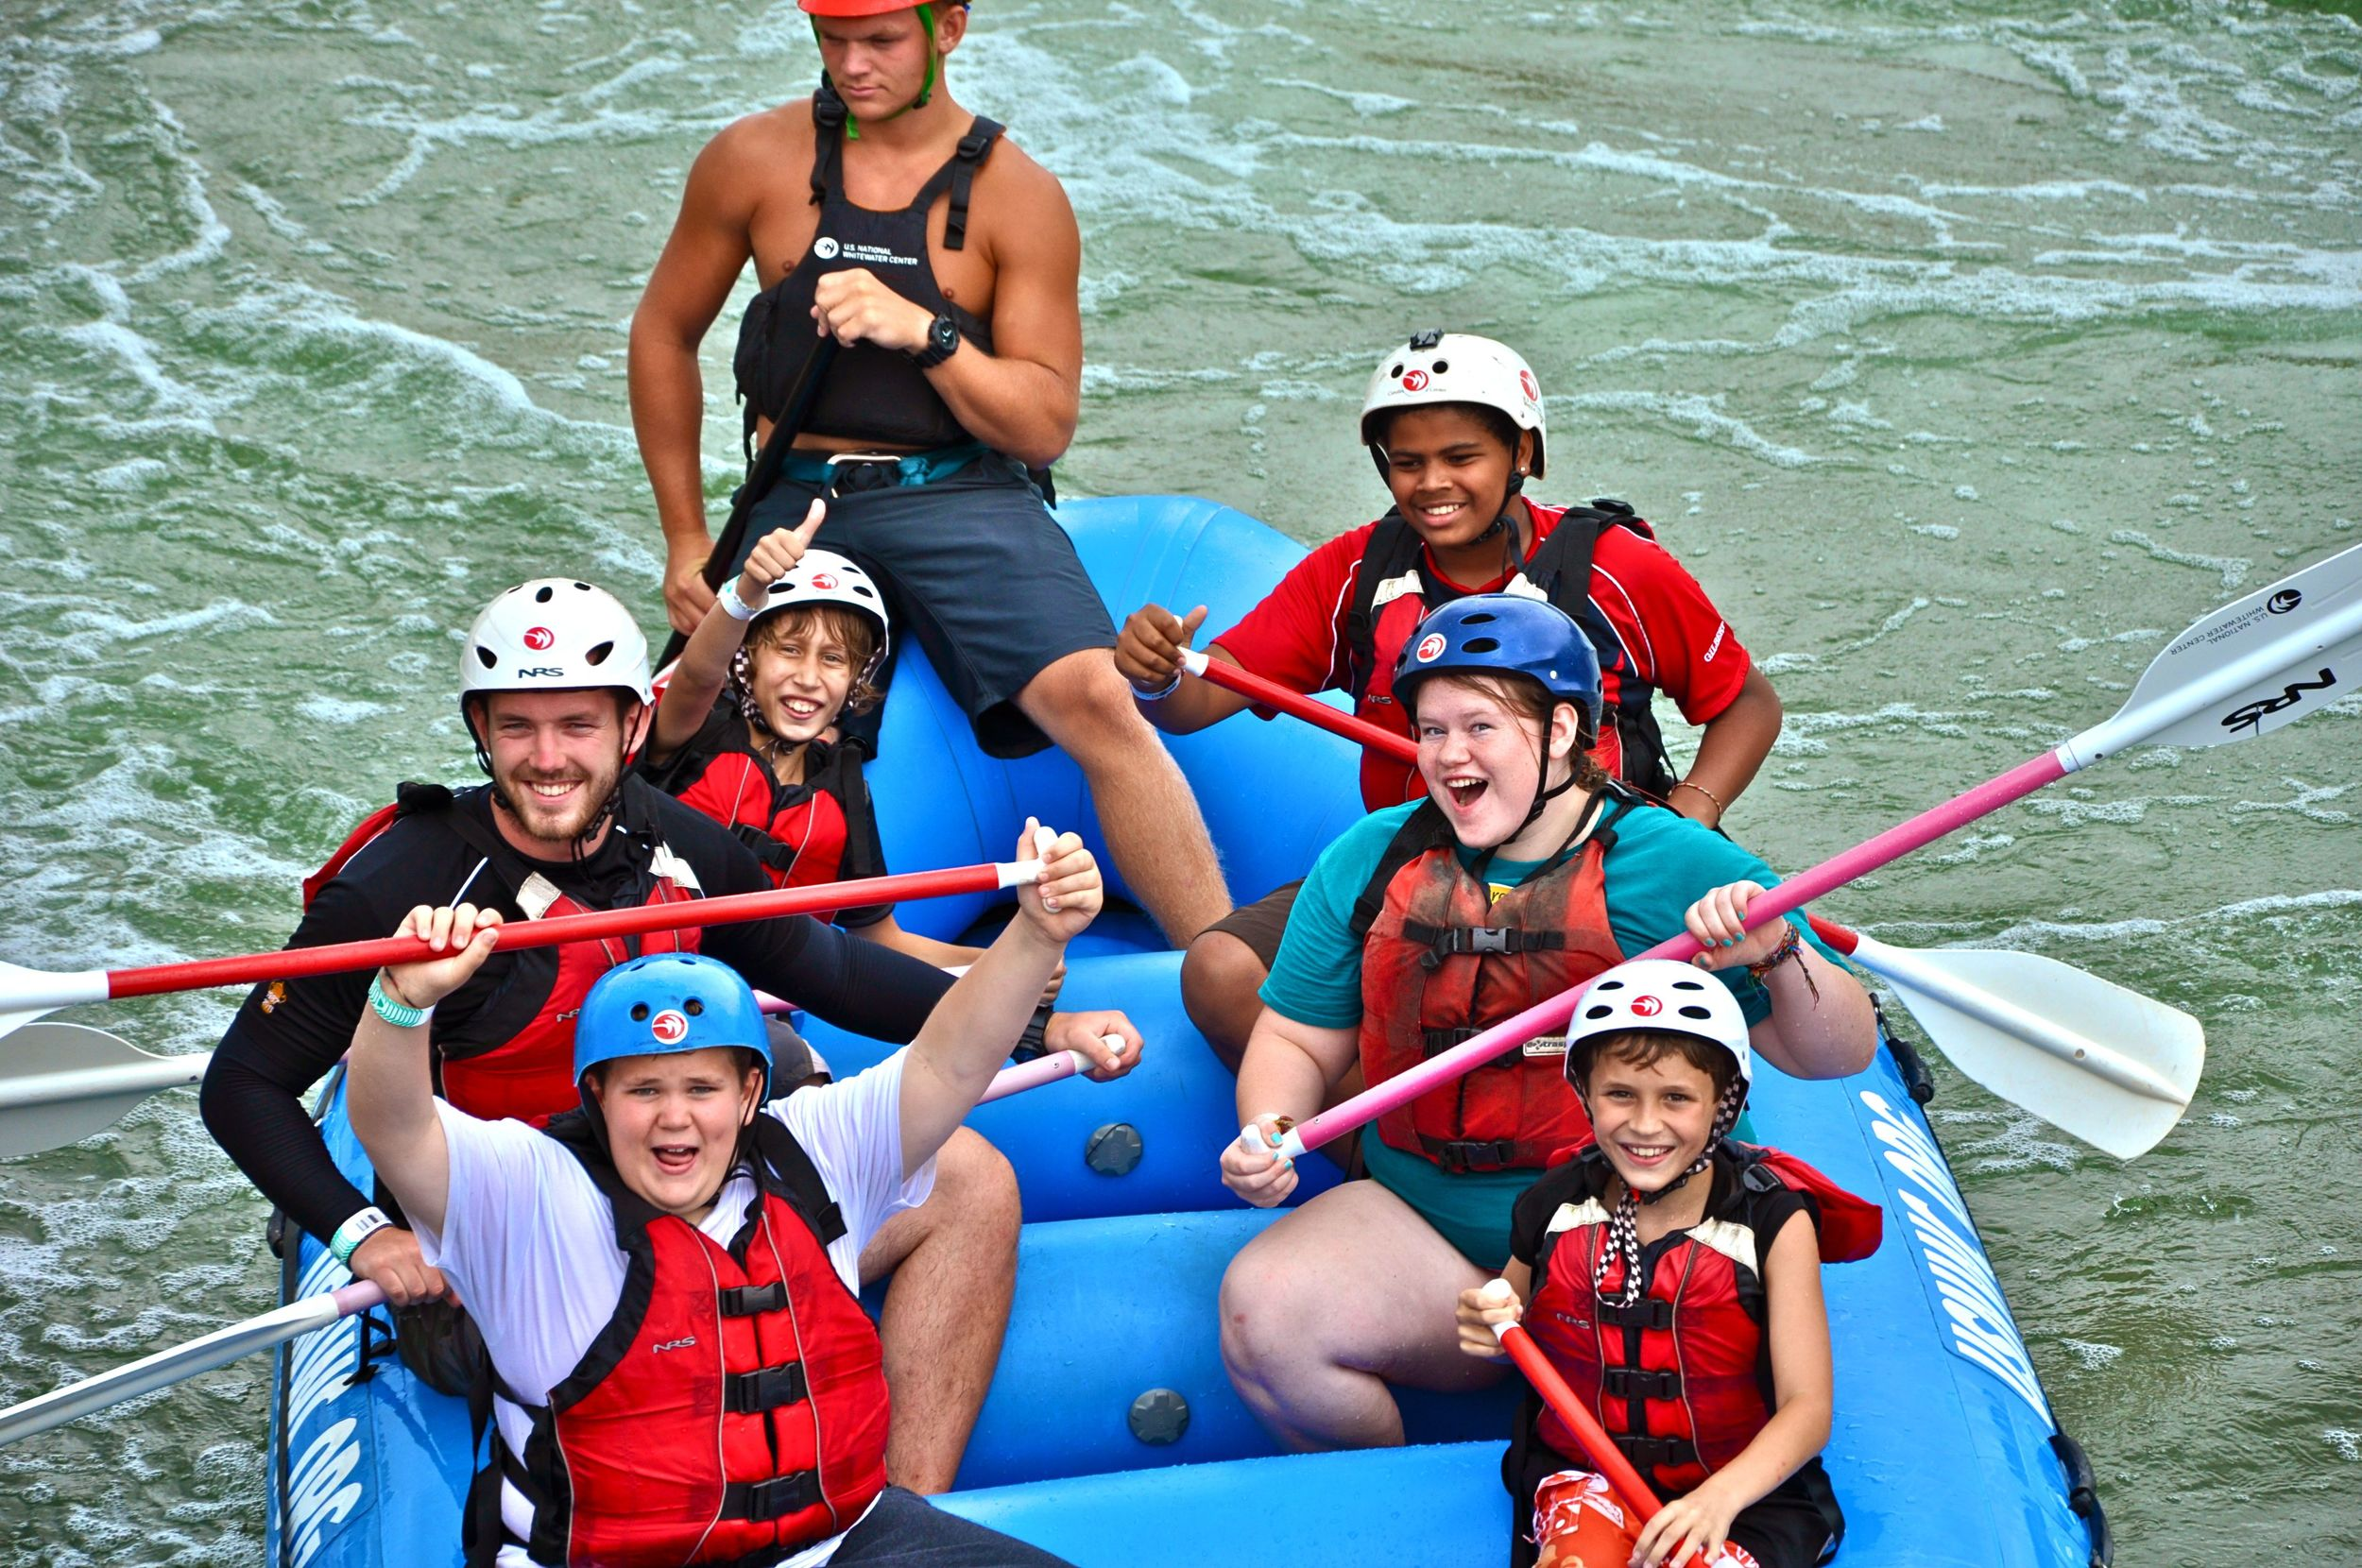 everyone-had-a-blast-at-the-whitewater-center-matthew-bo-james-anina-janusz-and-luca-display-our-feelings-of-the-day-perfectly.jpg